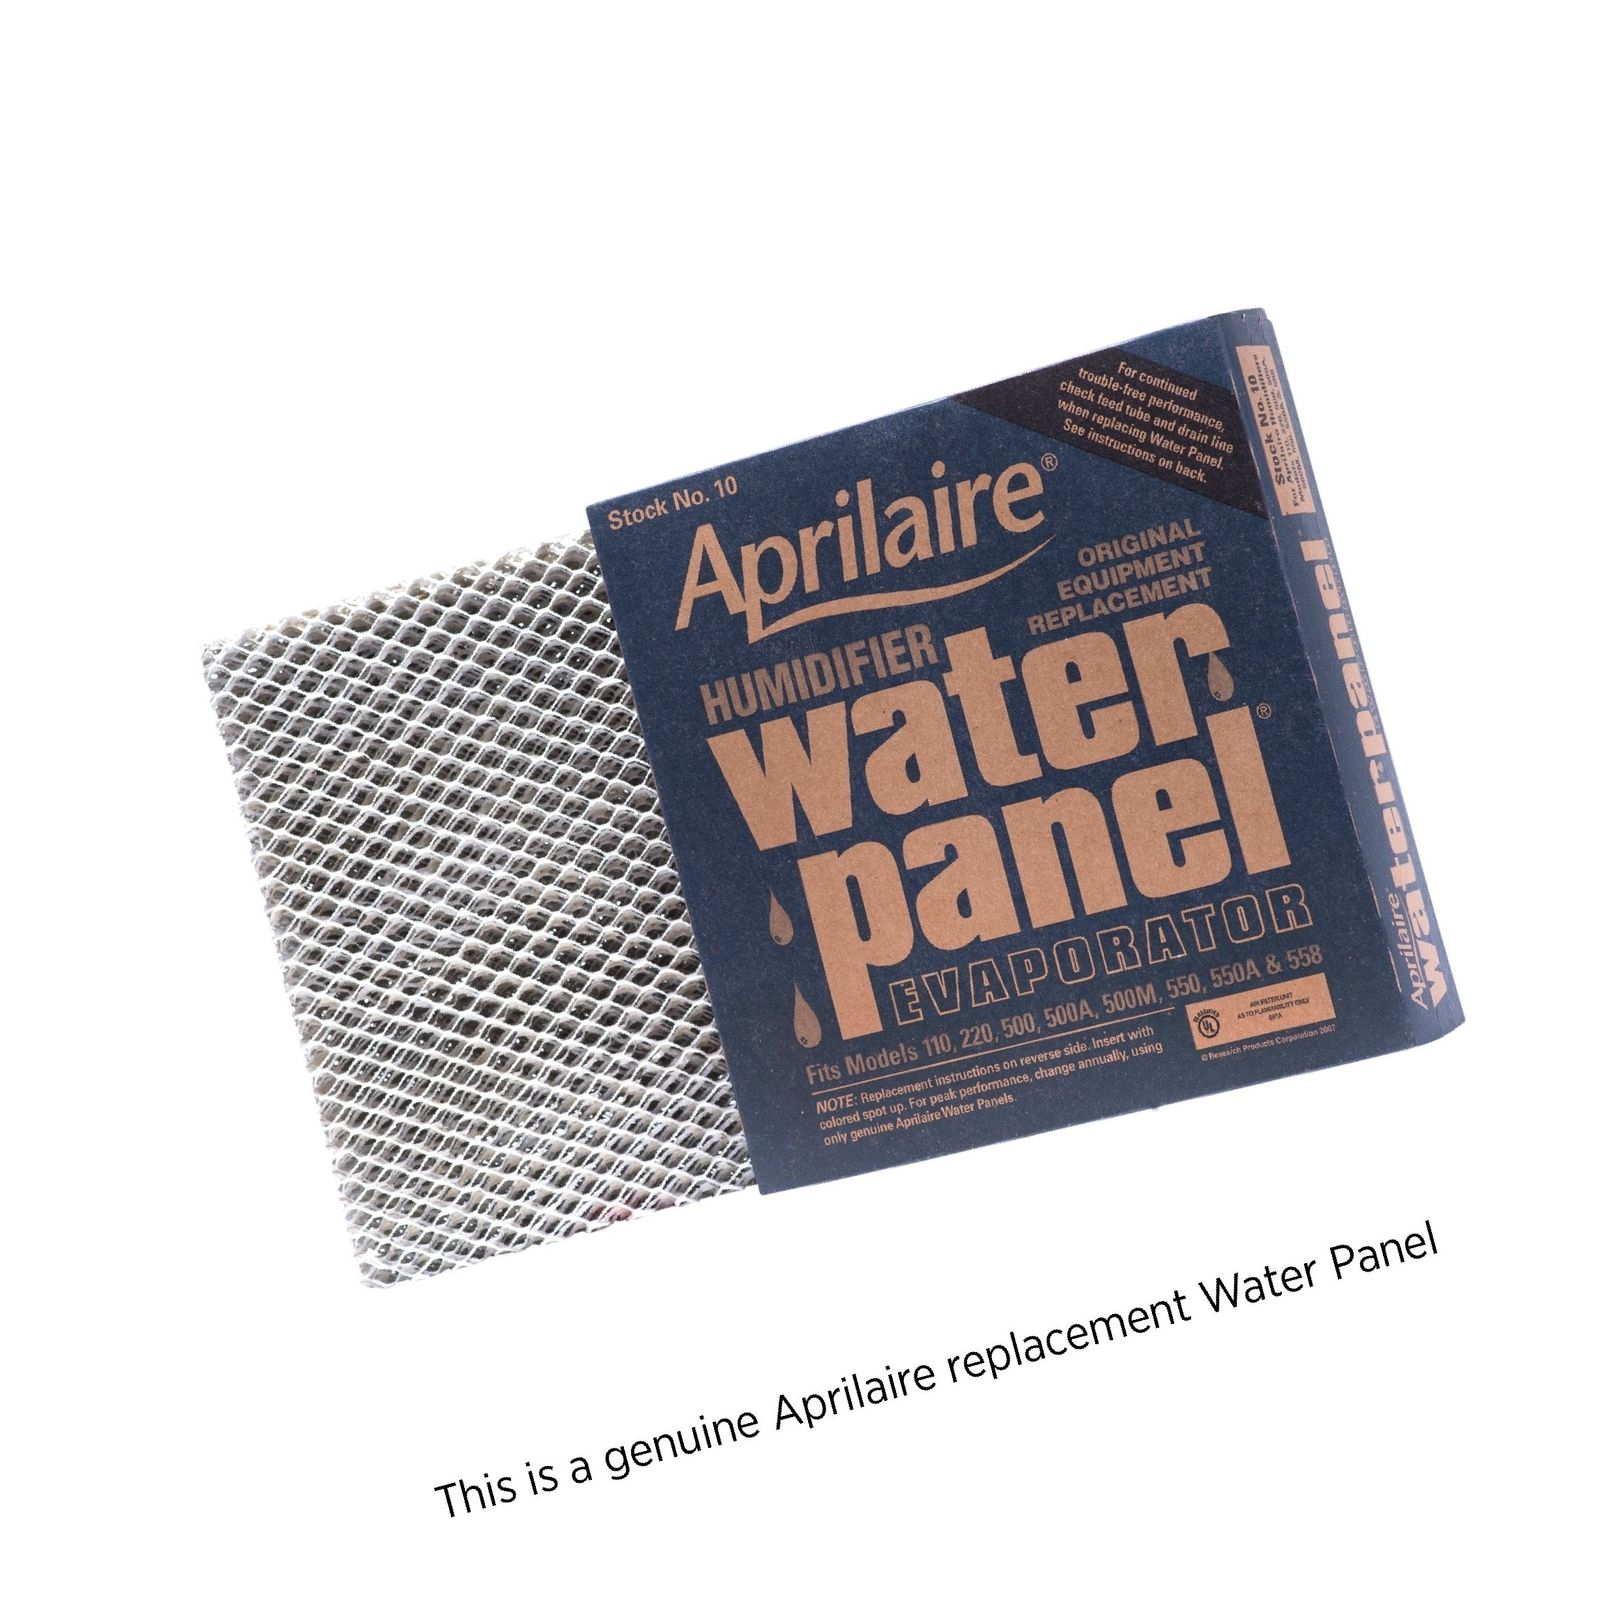 Aprilaire 10 Replacement Water Panel for Aprilaire Whole House Humidifier Mod...